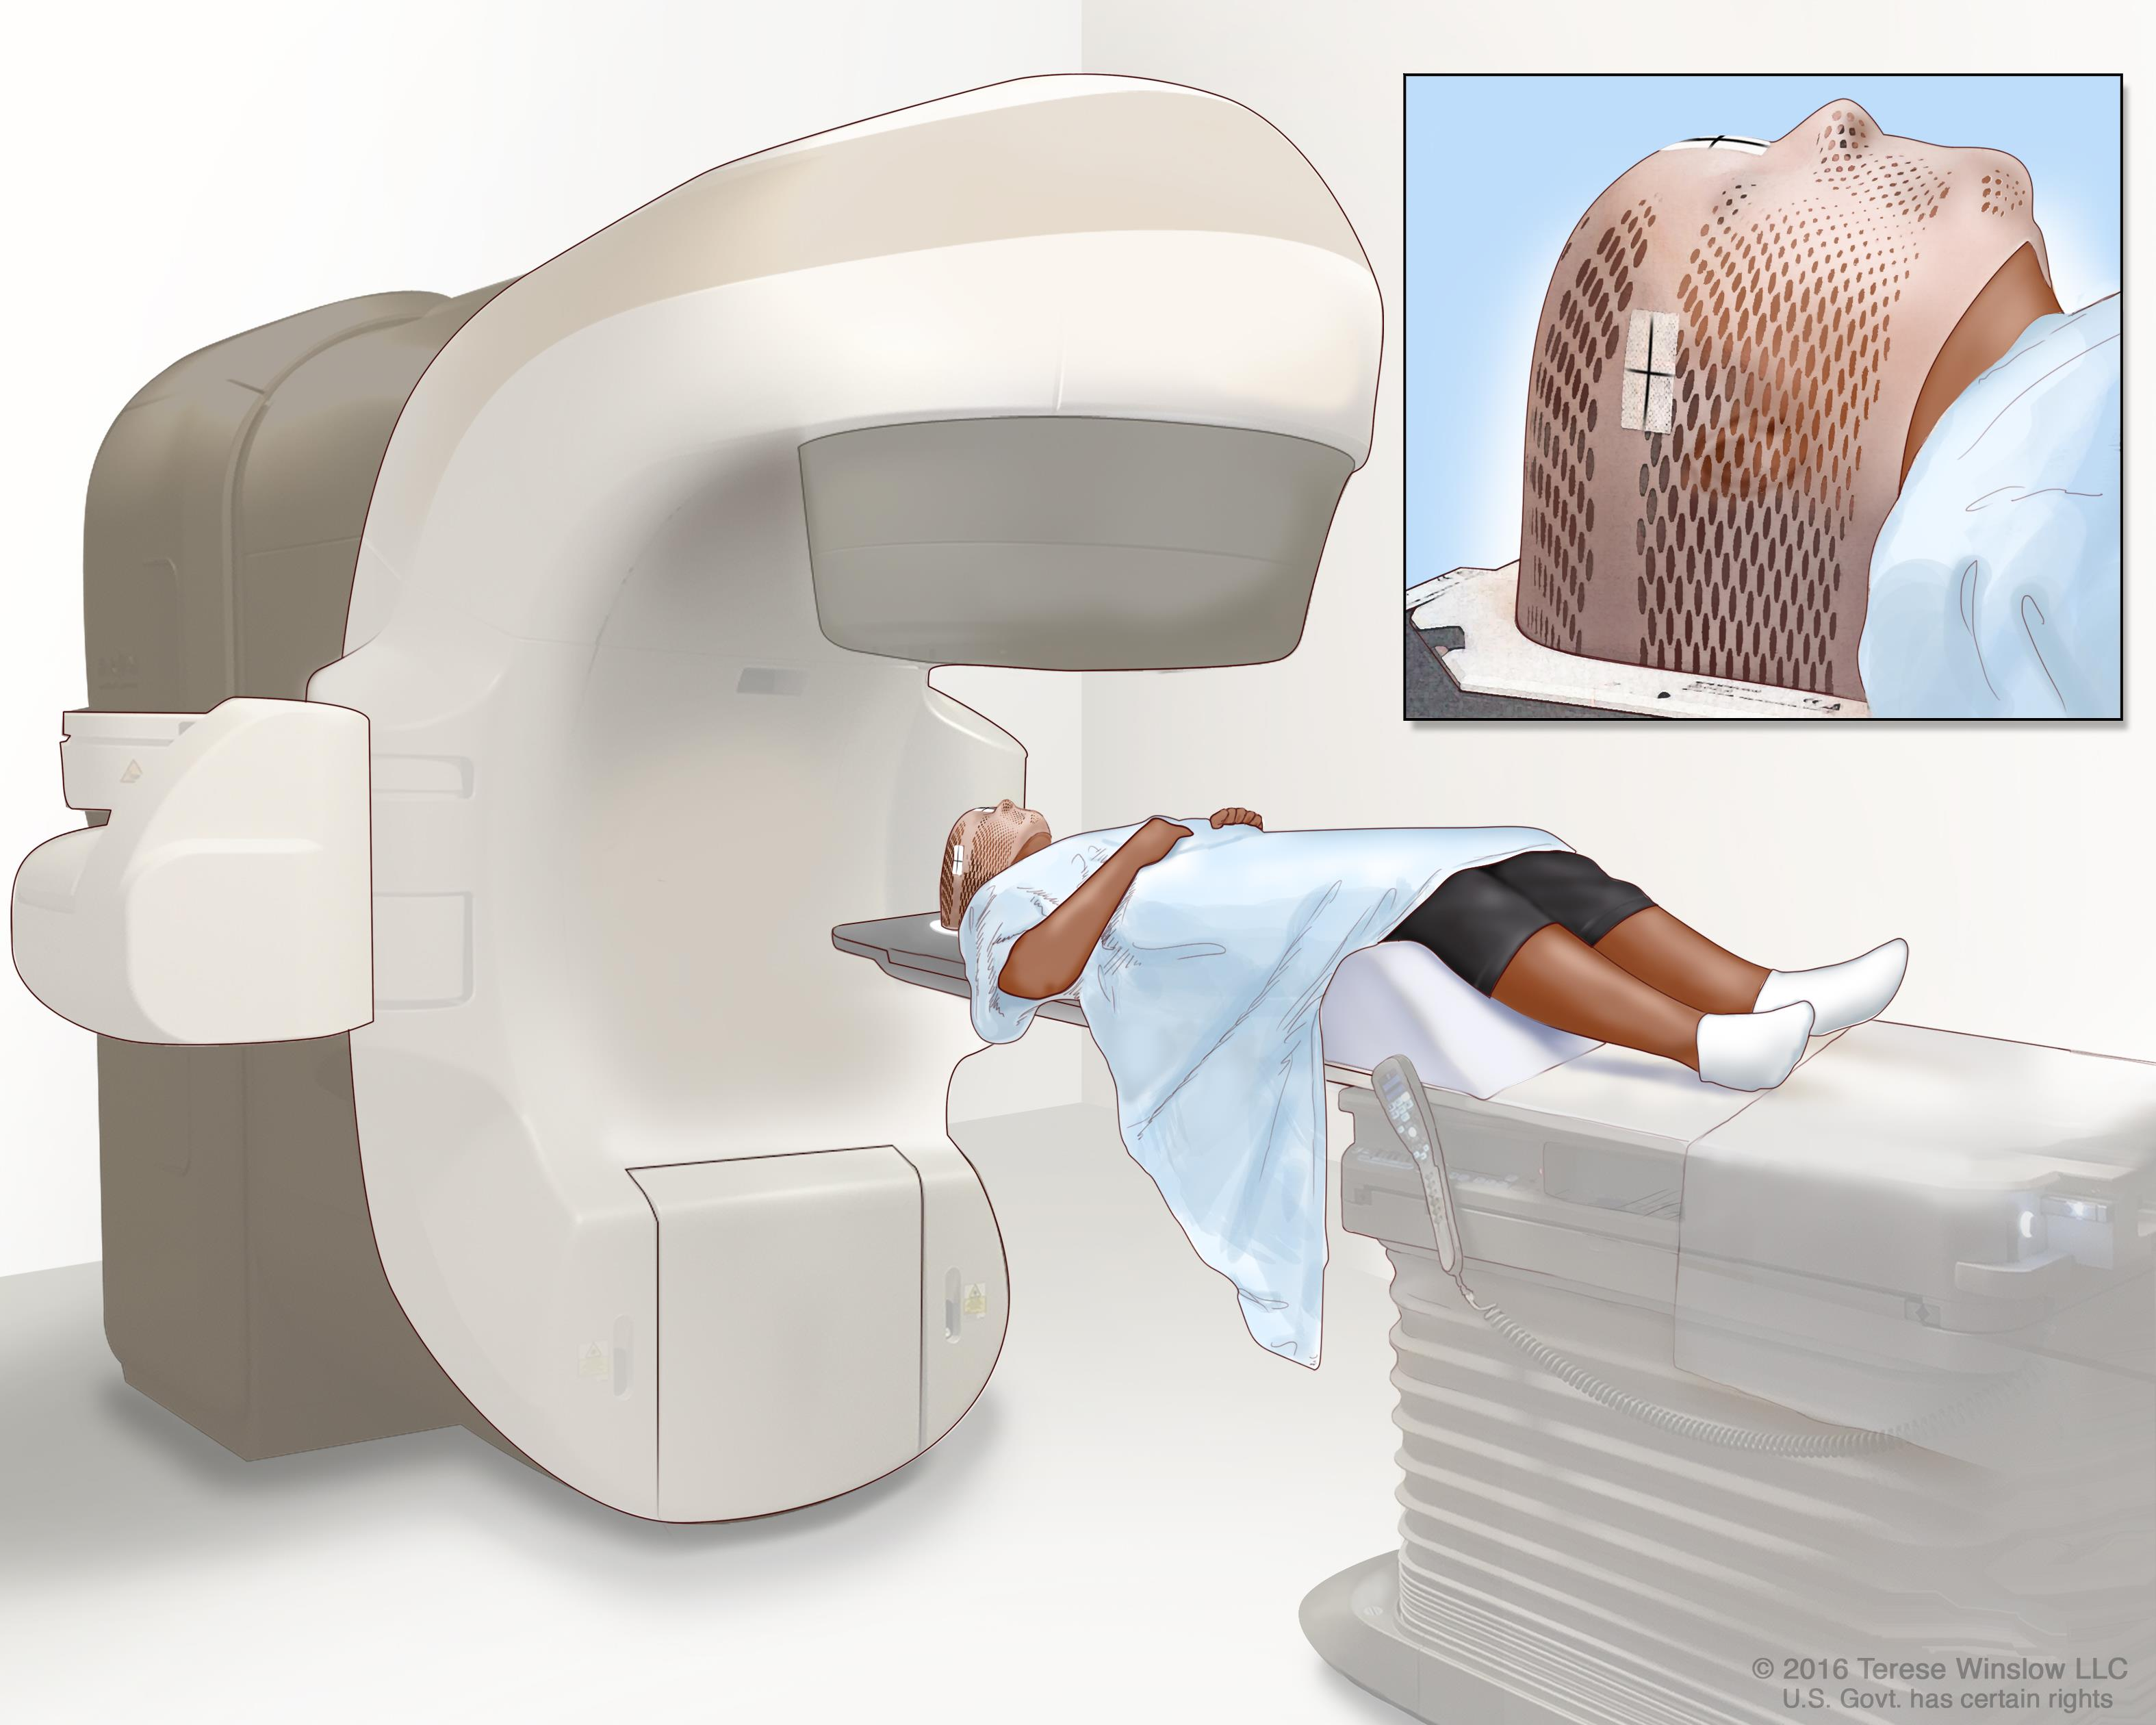 External-beam radiation therapy of the brain; drawing shows a patient lying on a table under a machine that is used to aim high-energy radiation. An inset shows a mesh mask that helps keep the patient's head from moving during treatment. The mask has pieces of white tape with small ink marks on it. The ink marks are used to line up the radiation machine in the same position before each treatment.